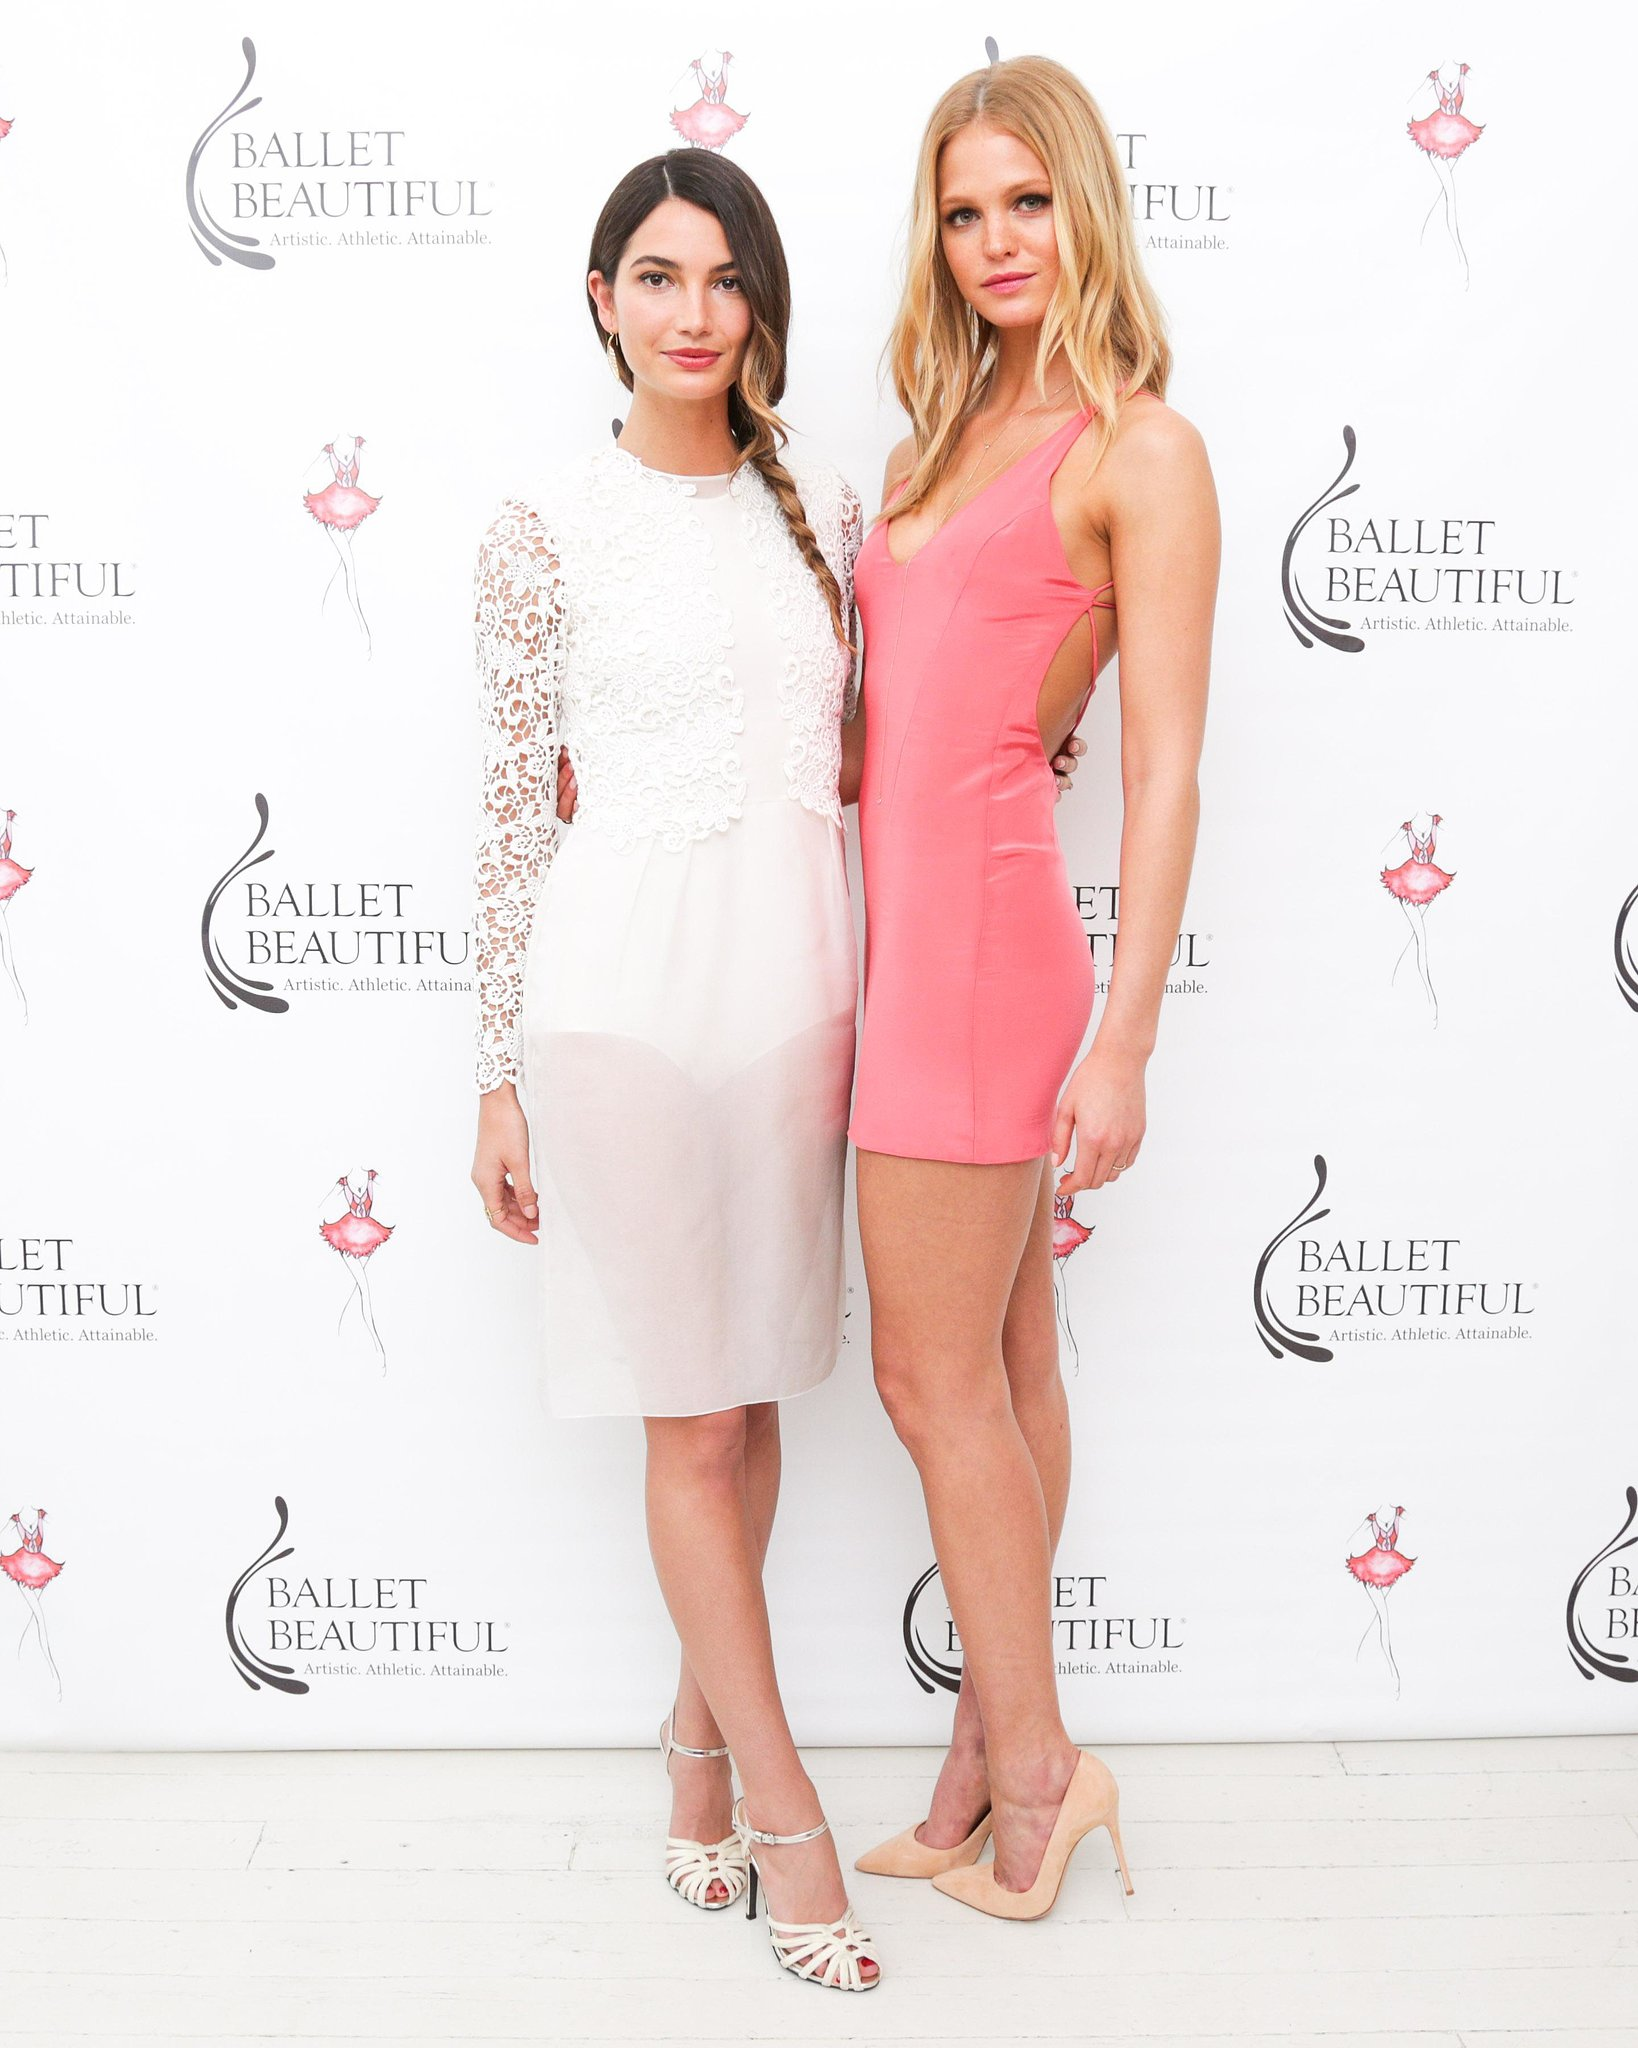 Lily Aldridge and Erin Heatherton at the Ballet Beautiful Custom Workout launch in NYC. Source: Benjamin Lozovsky/BFAnyc.com